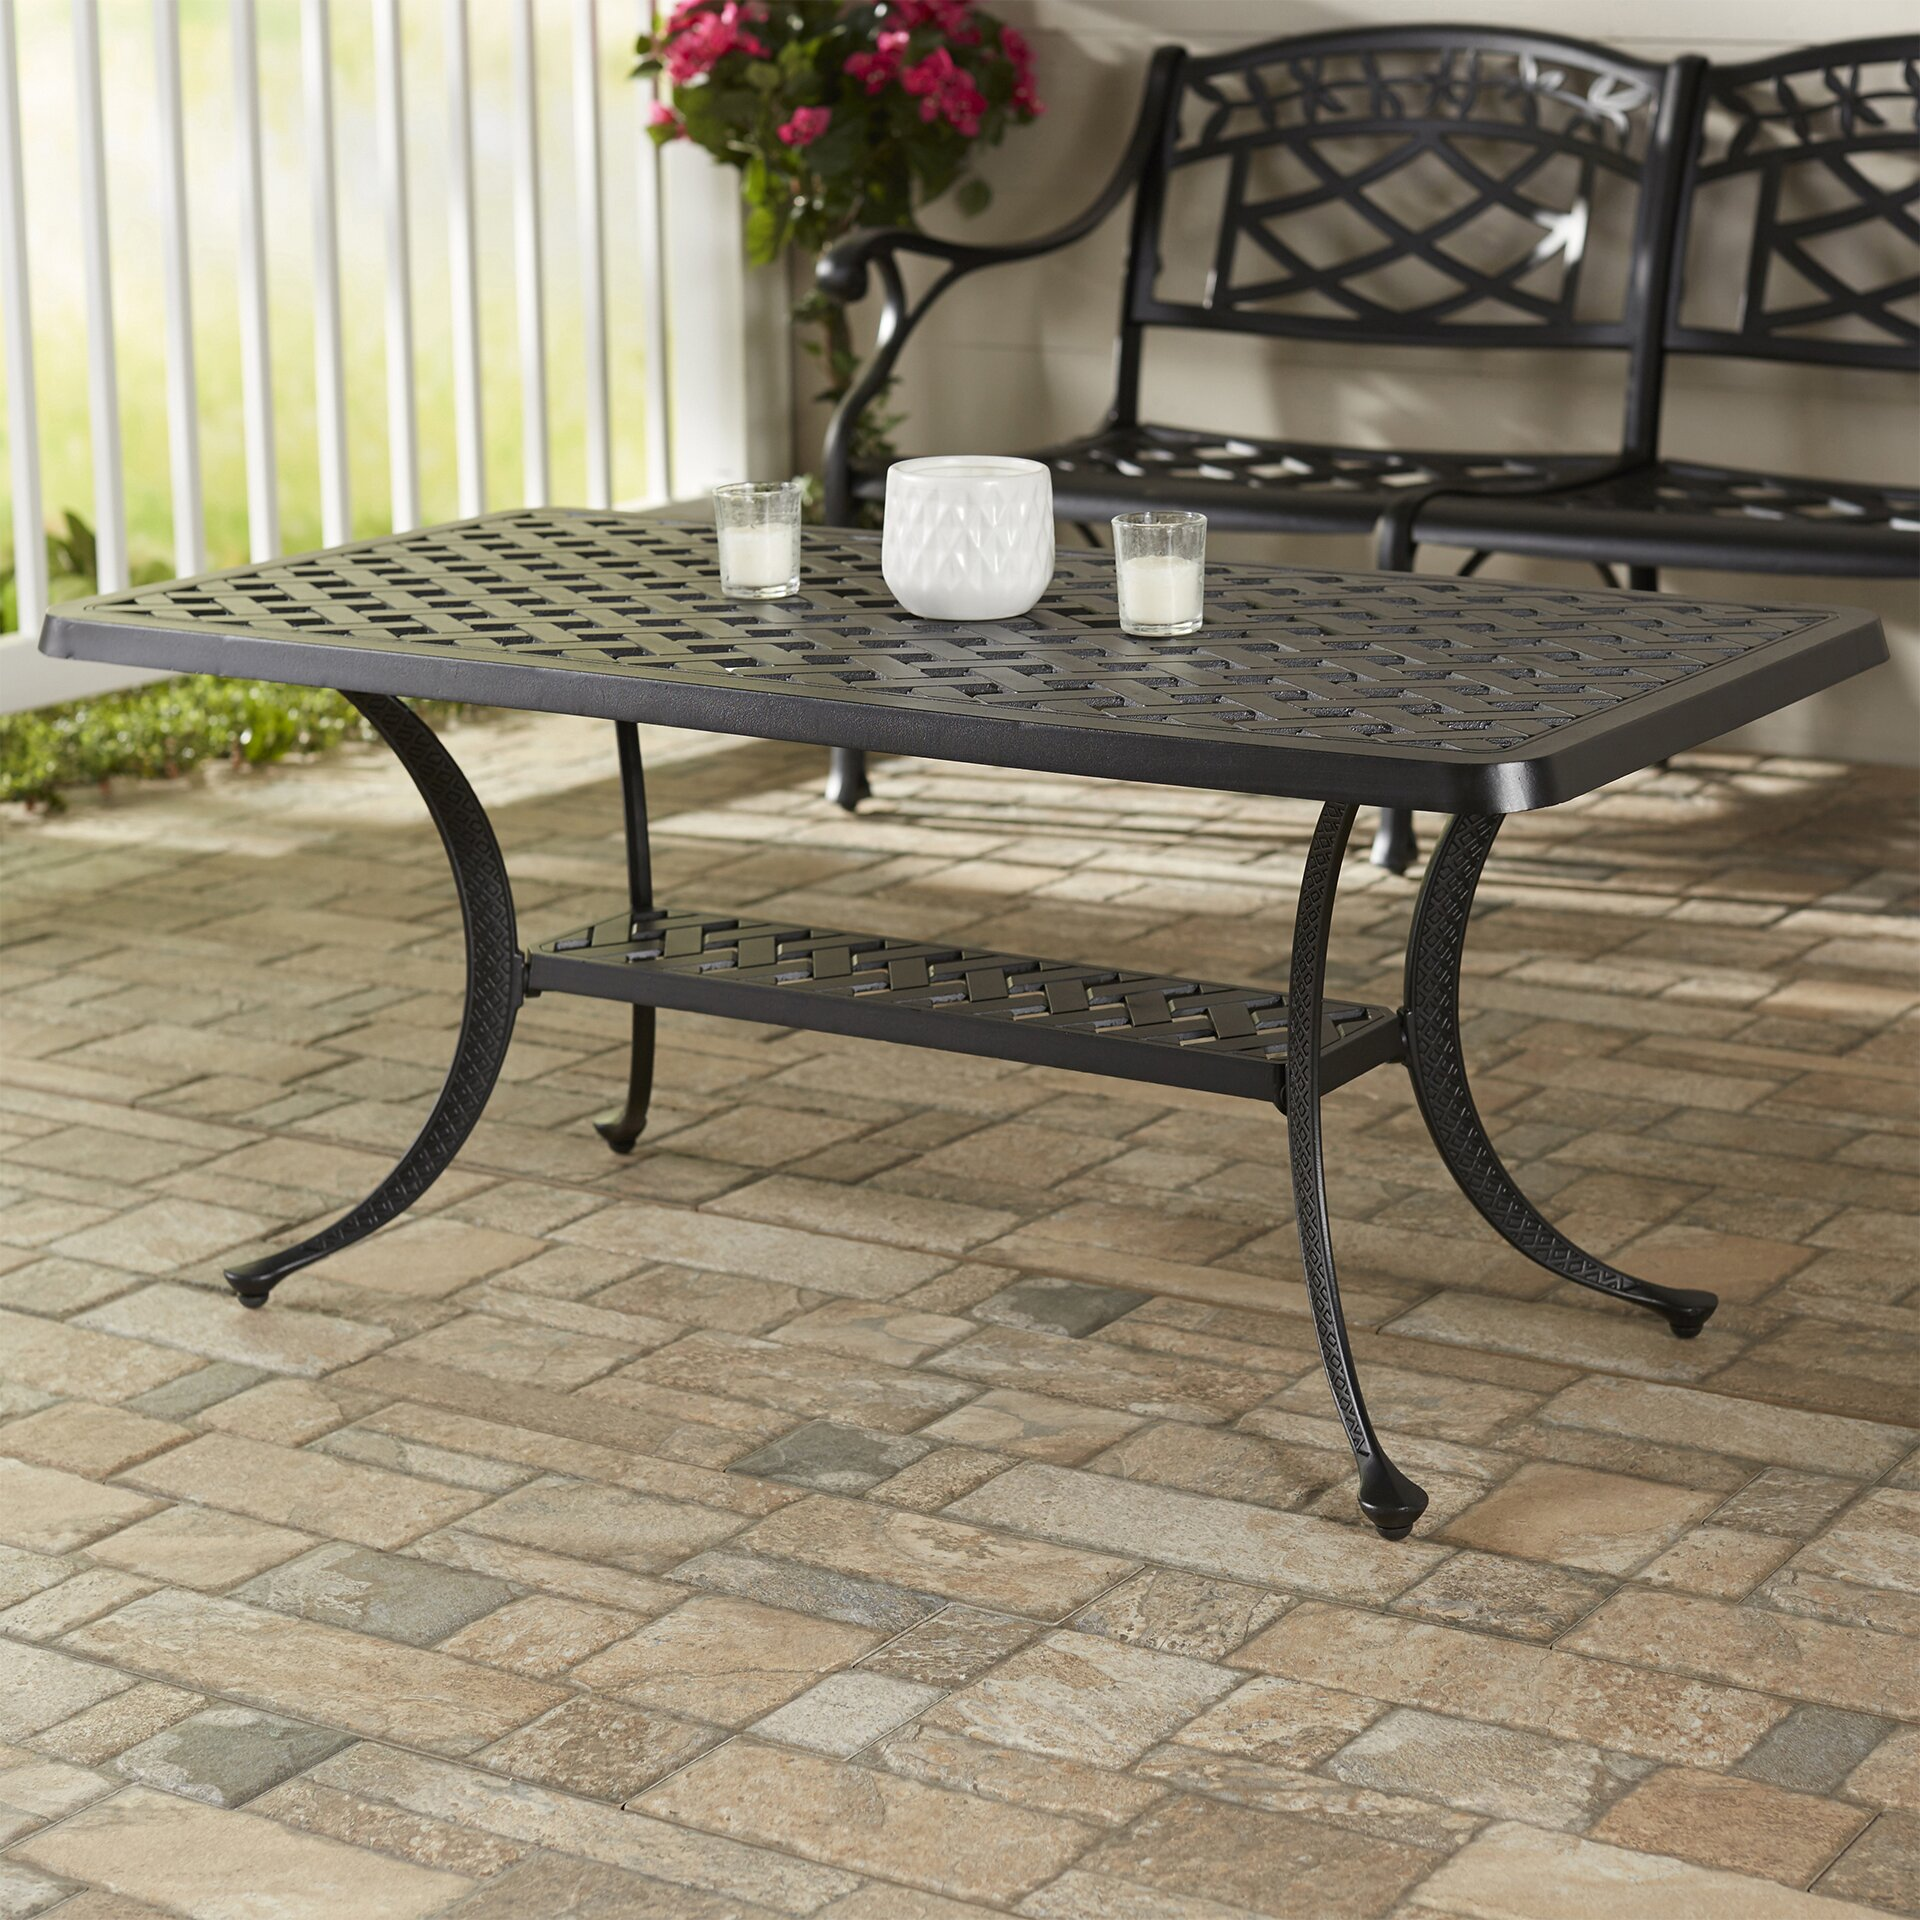 Outdoor Coffee Table: Darby Home Co Lomax Cast Aluminum Rectangular Coffee Table